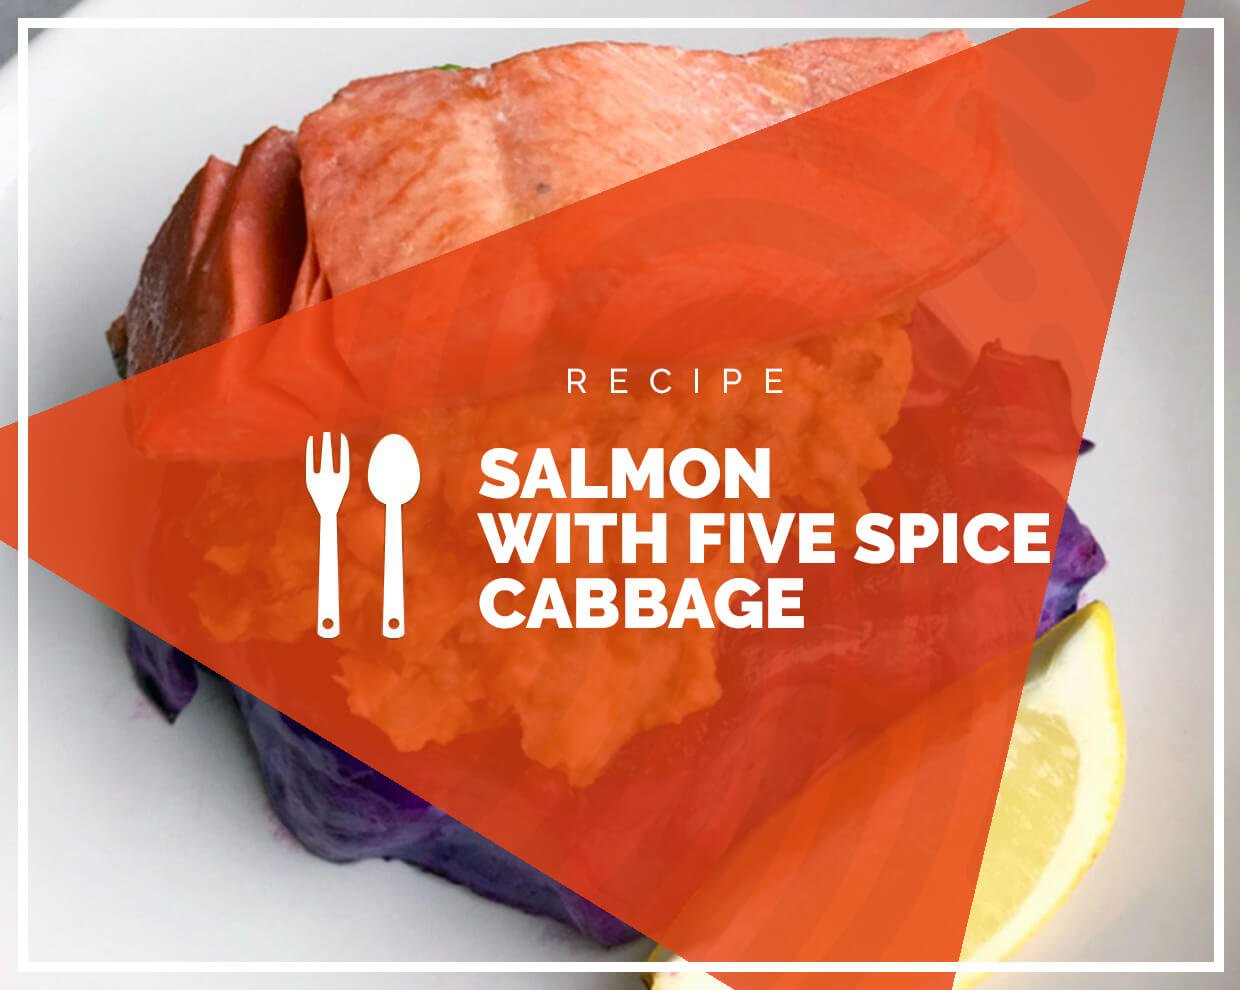 Salmon with five spice cabbage